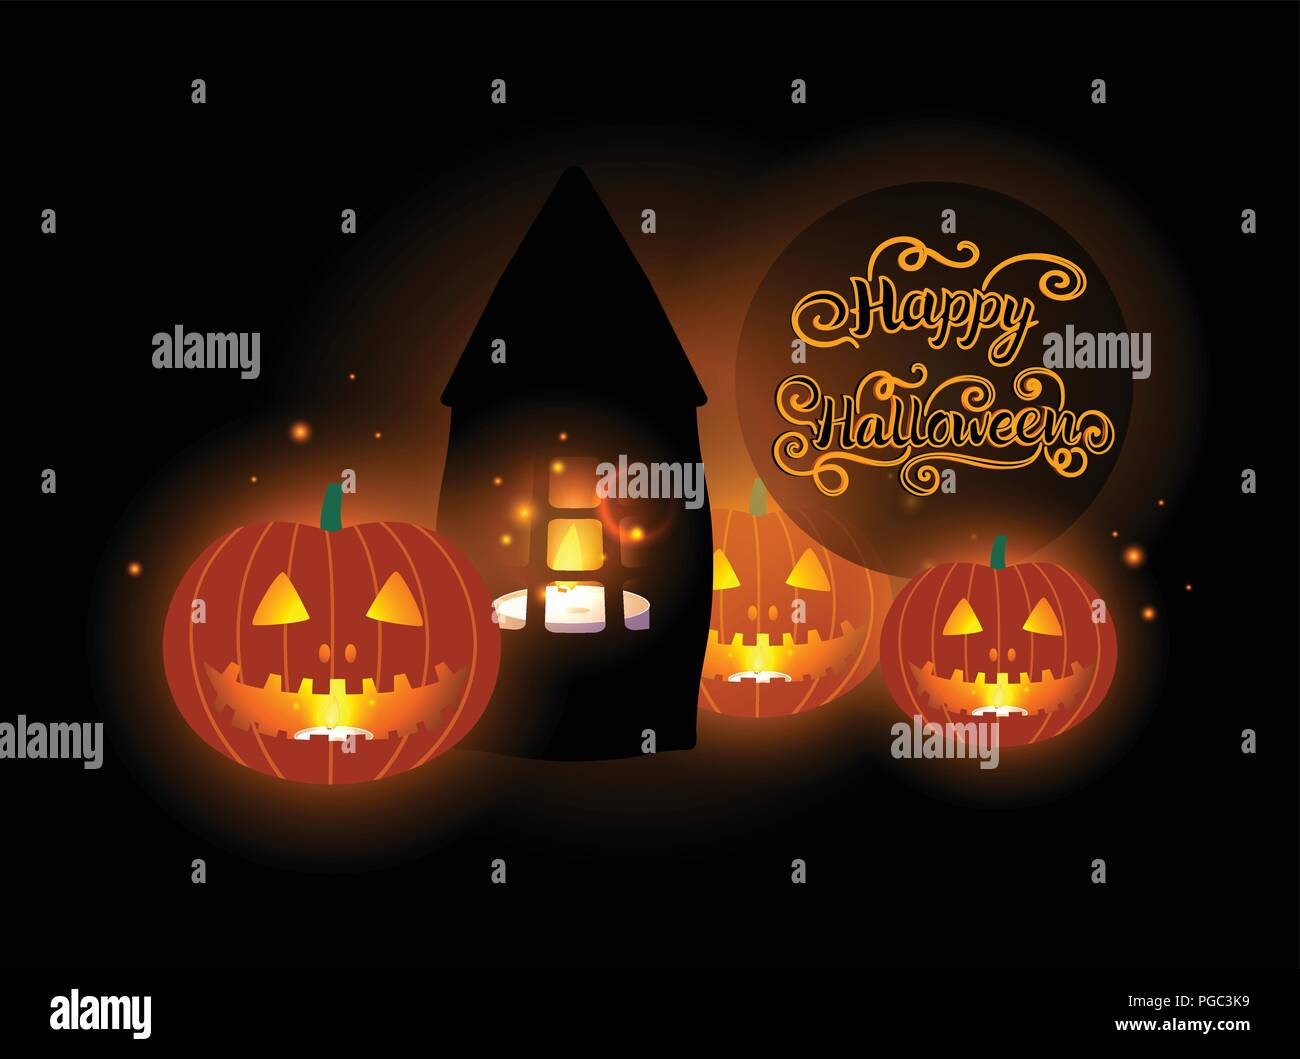 Happy Halloween Design Jack Pumpkin Lantern And Candles Glowing Vector Illustration On A Black Background Stock Vector Image Art Alamy